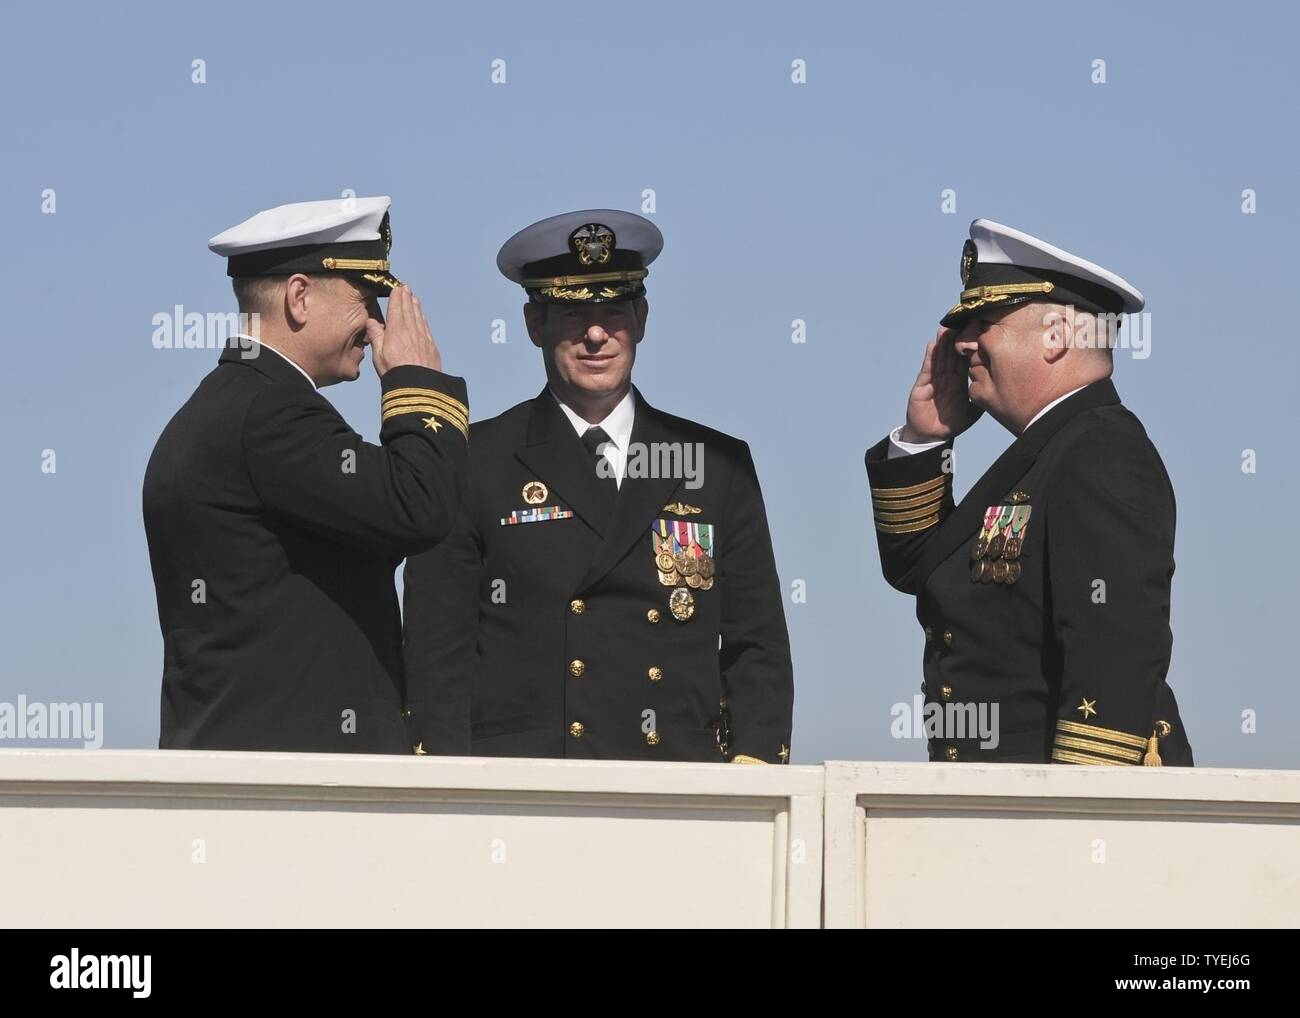 SAN DIEGO (Nov. 4, 2016) – Capt. Daniel Caldwell, right, relieves Cmdr. Jeff Juergens as the commanding officer of the Los Angeles-class fast attack submarine USS San Francisco (SSN 711) during a change of command and farewell ceremony on Naval Base Point Loma, Nov. 4. The San Francisco is scheduled to shift homeports to Norfolk, Va. to begin a two year conversion process to become a moored training ship at the Nuclear Power Training Unit in Charleston, S.C. - Stock Image